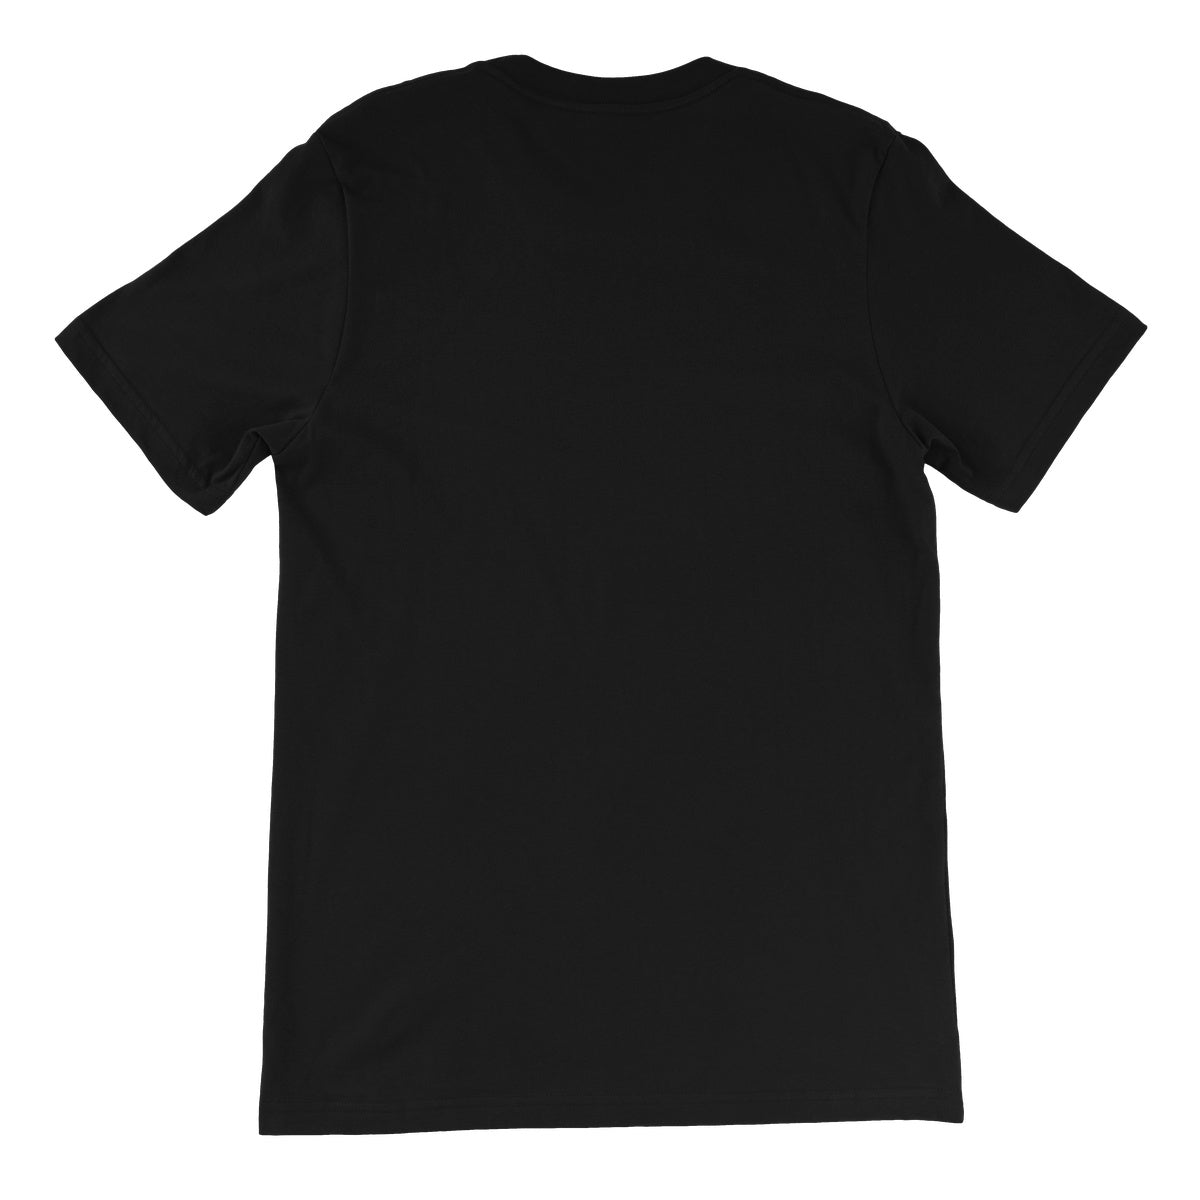 CxE Only Marks Unisex Short Sleeve T-Shirt